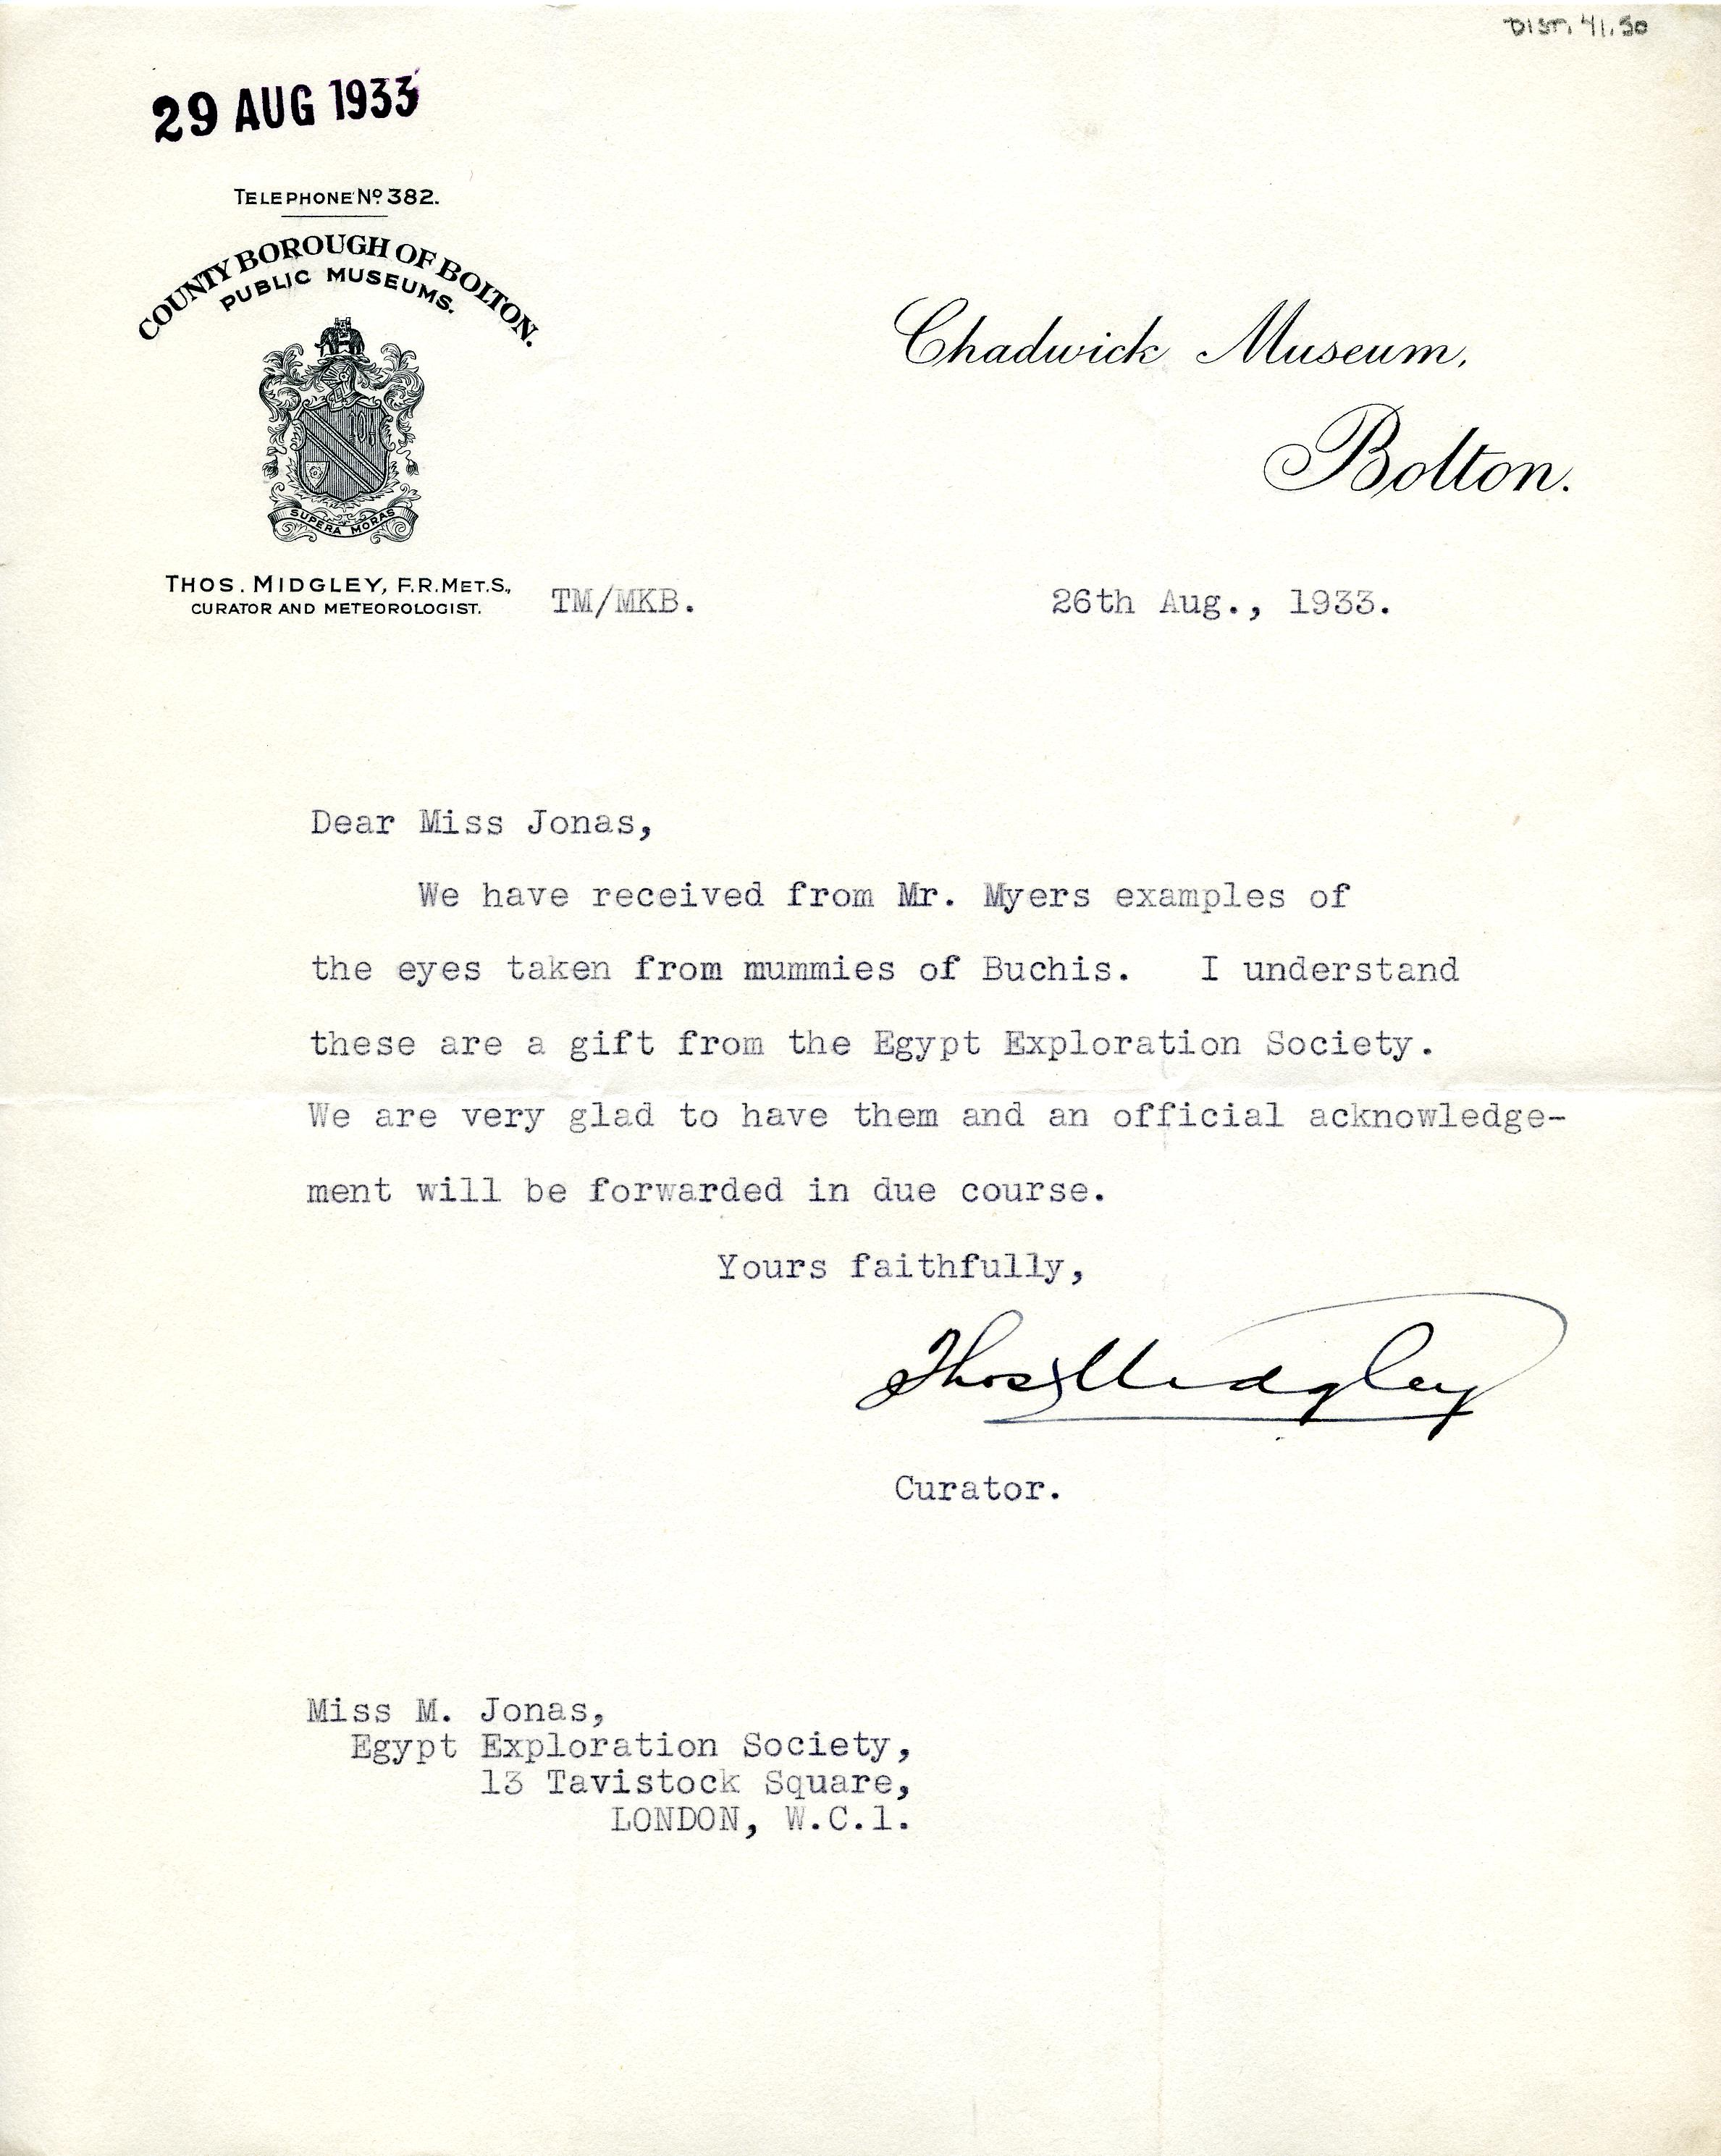 1922-76 Miscellaneous correspondence with museums DIST.41.50